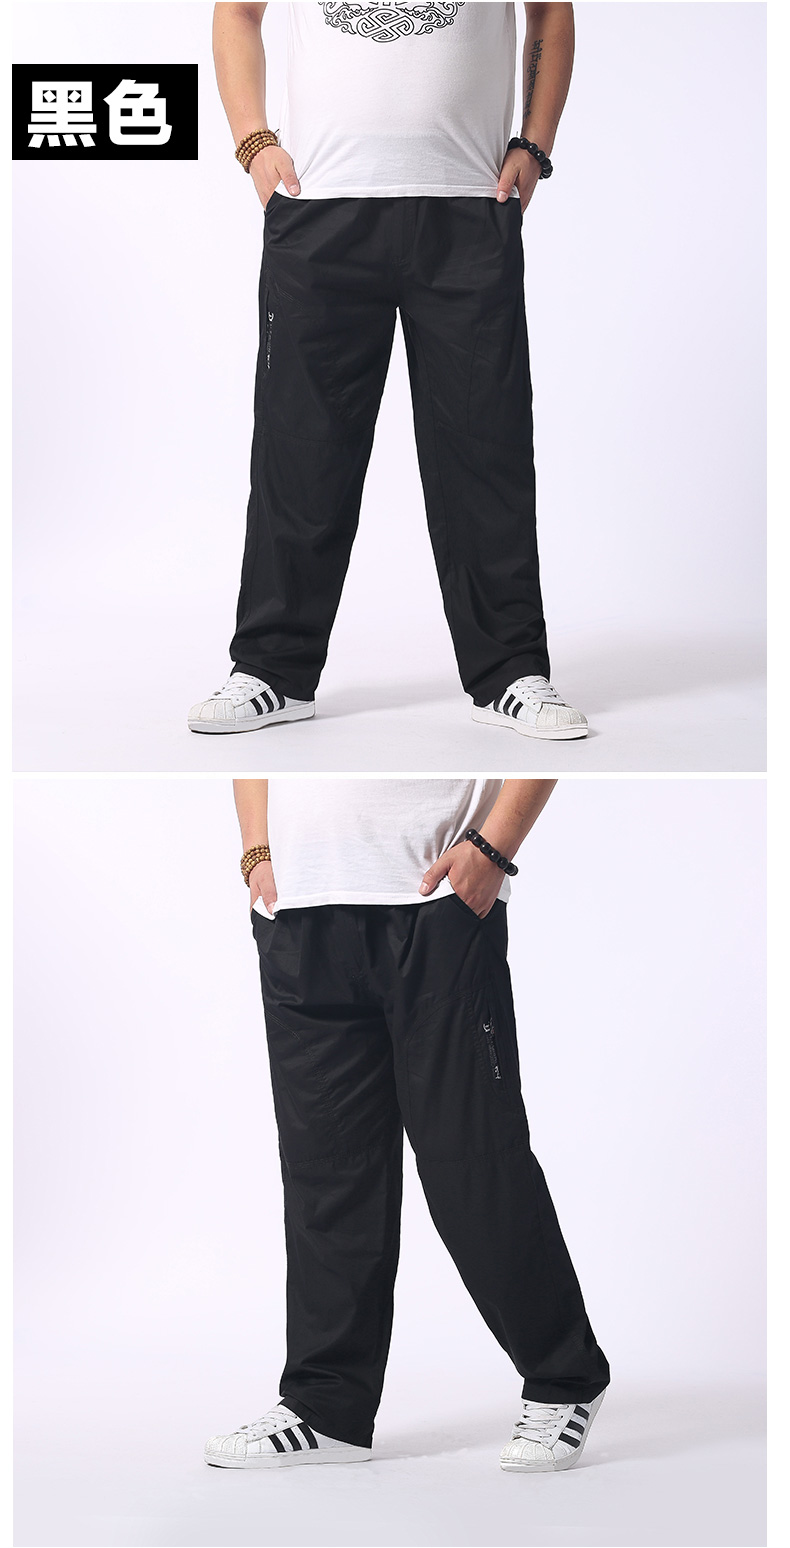 Man Loose Fitting Cargo Pants Yellow Black Gray Khaki  Overall For Mens Cotton Comfort Trousers Elastic Waist Pant American Apparel (12)